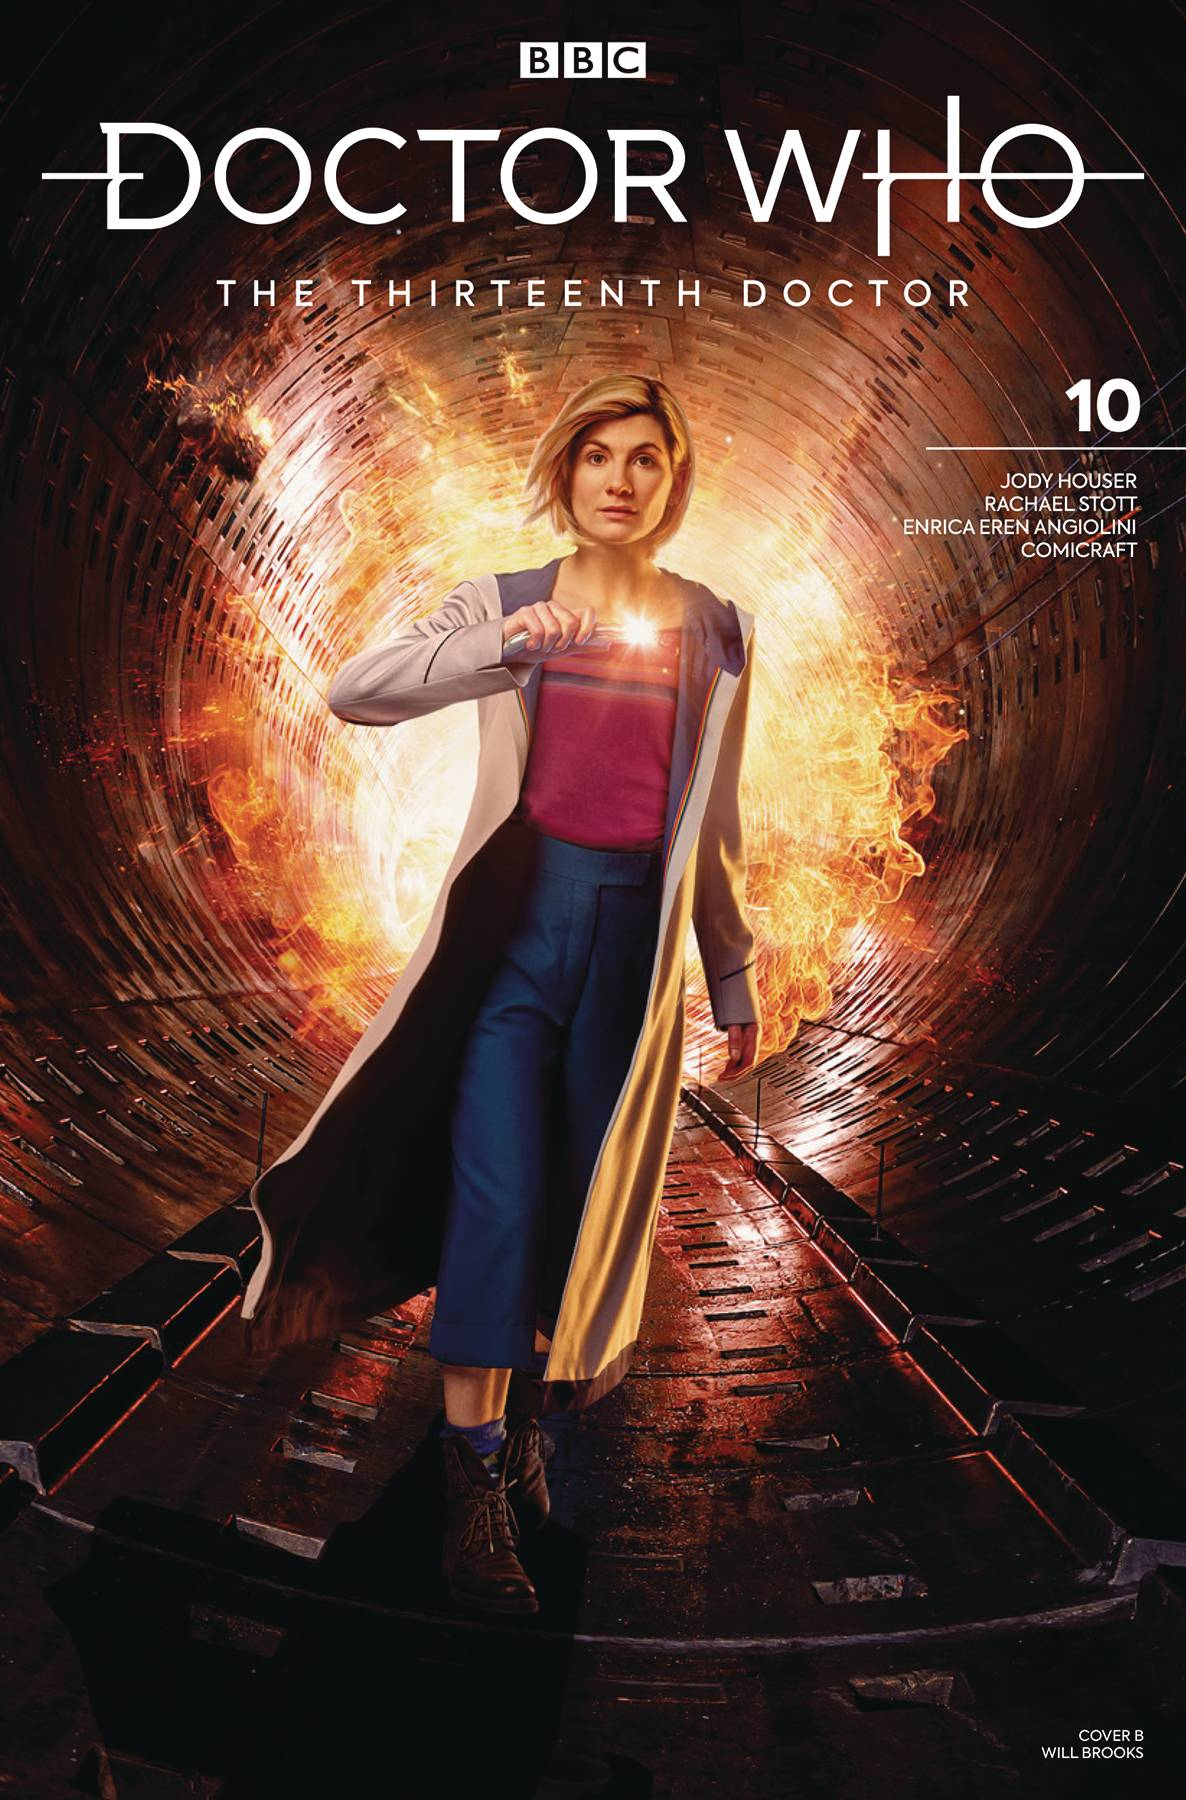 DOCTOR WHO 13TH 10 CVR B PHOTO.jpg